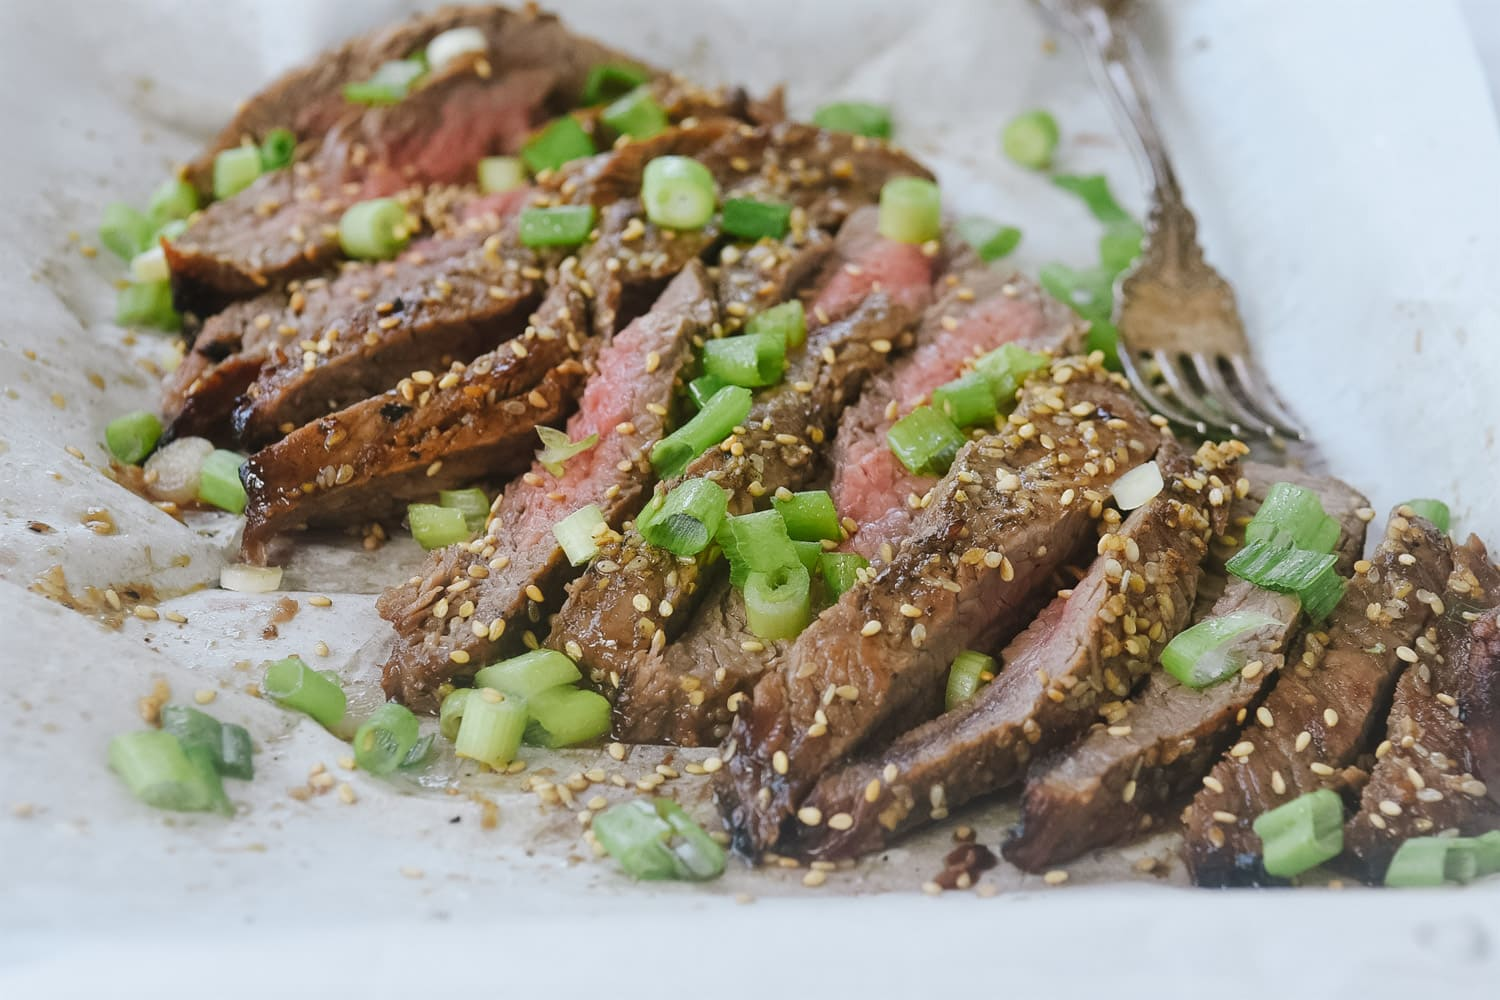 Fla k Steak with green onions